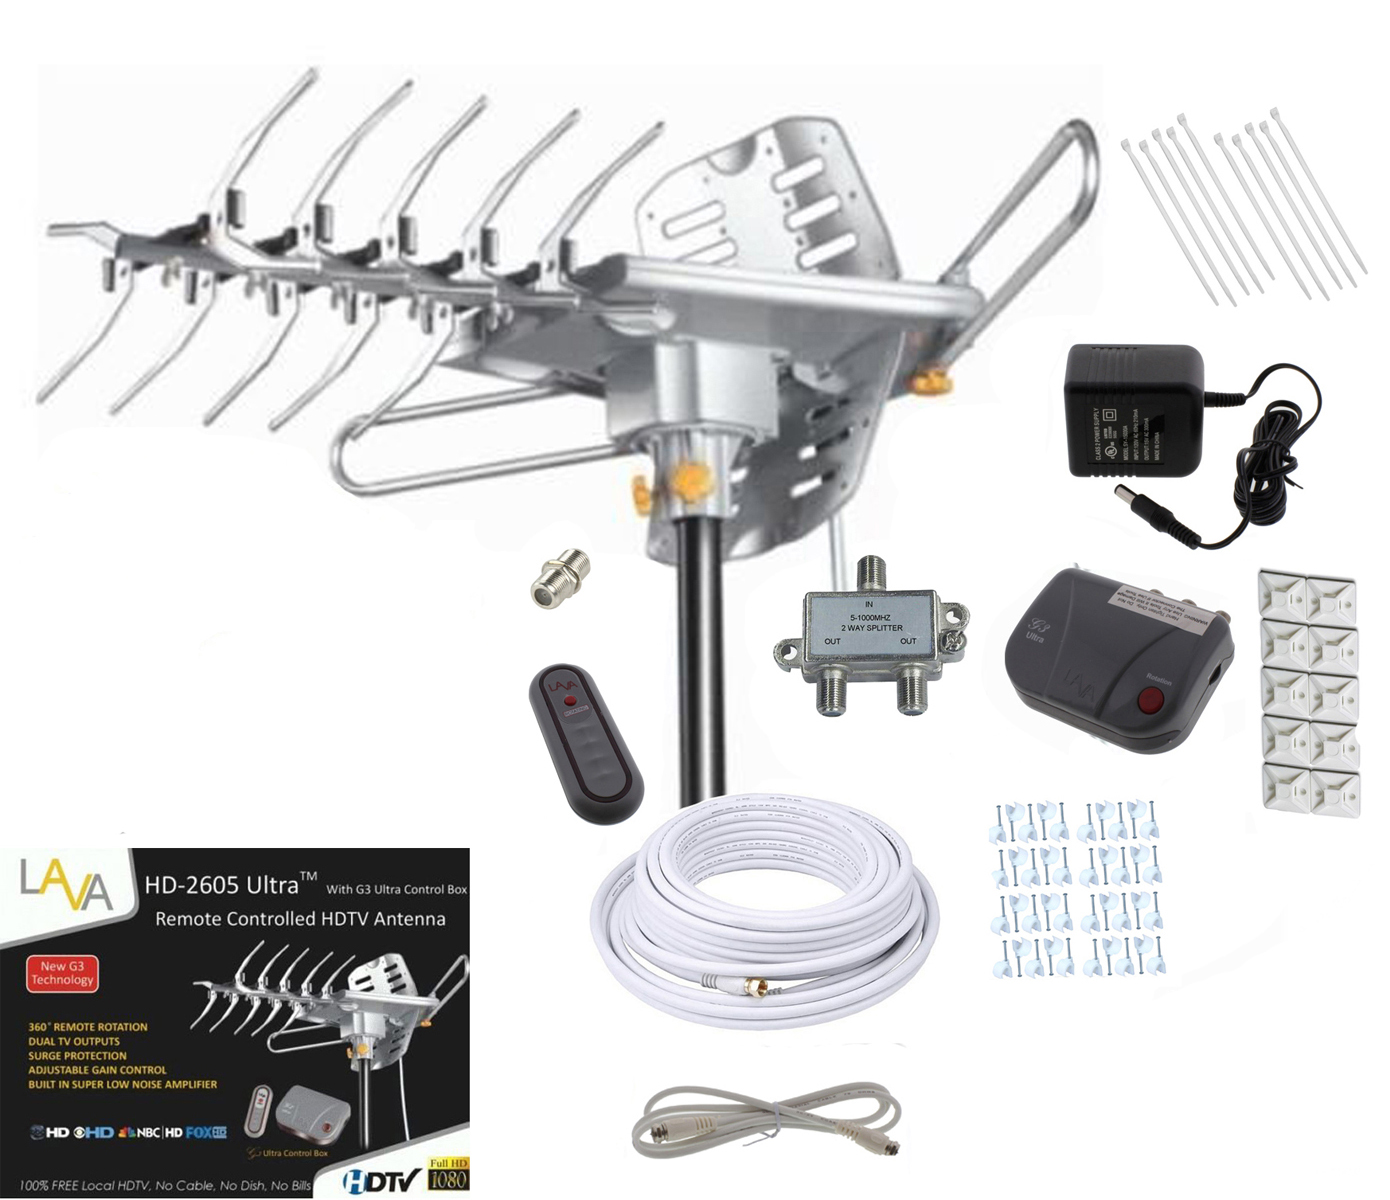 lava hd2605 hdtv digital rotor amplified outdoor hd tv antenna cable install kit ebay. Black Bedroom Furniture Sets. Home Design Ideas